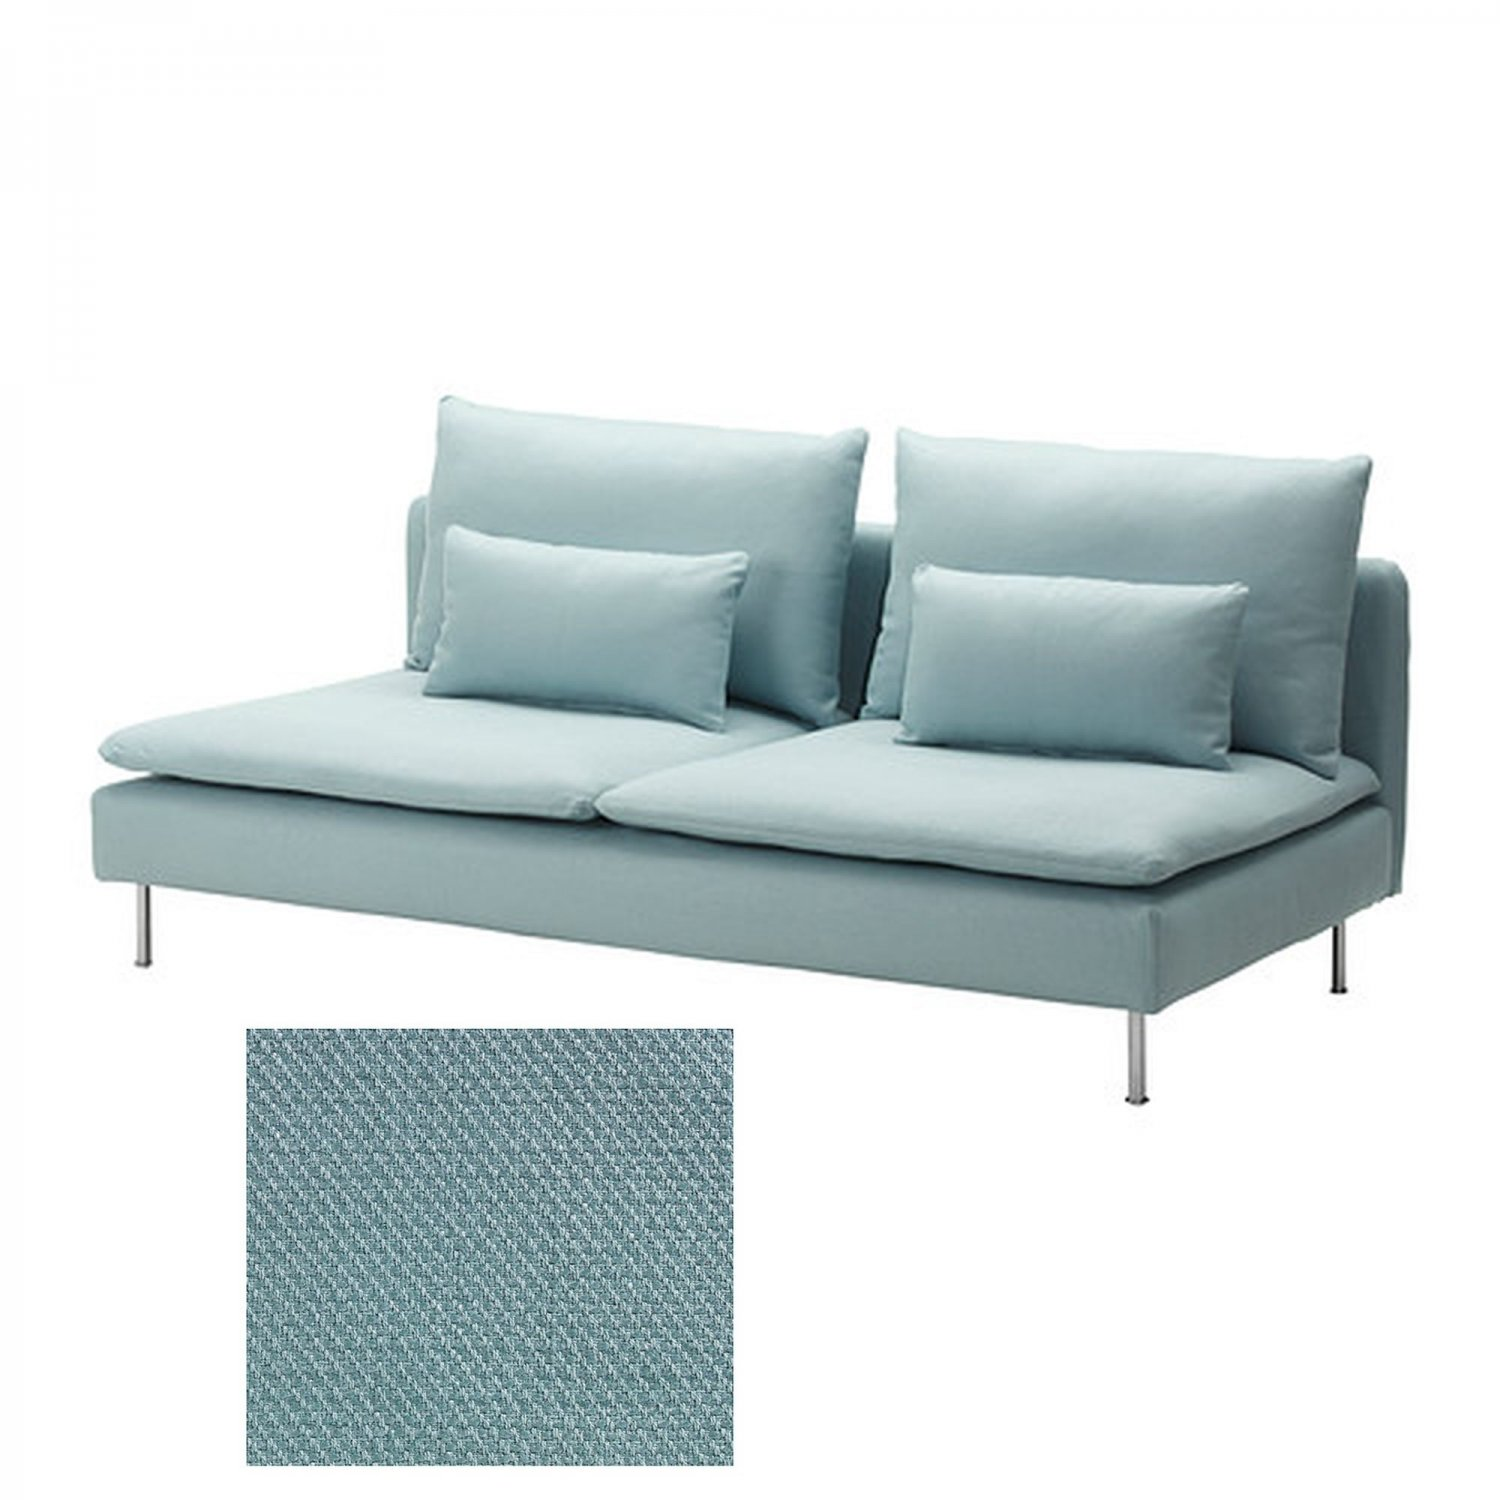 Ikea Soderhamn 3 Seat Sofa Slipcover Cover Isefall Light Turquoise Section